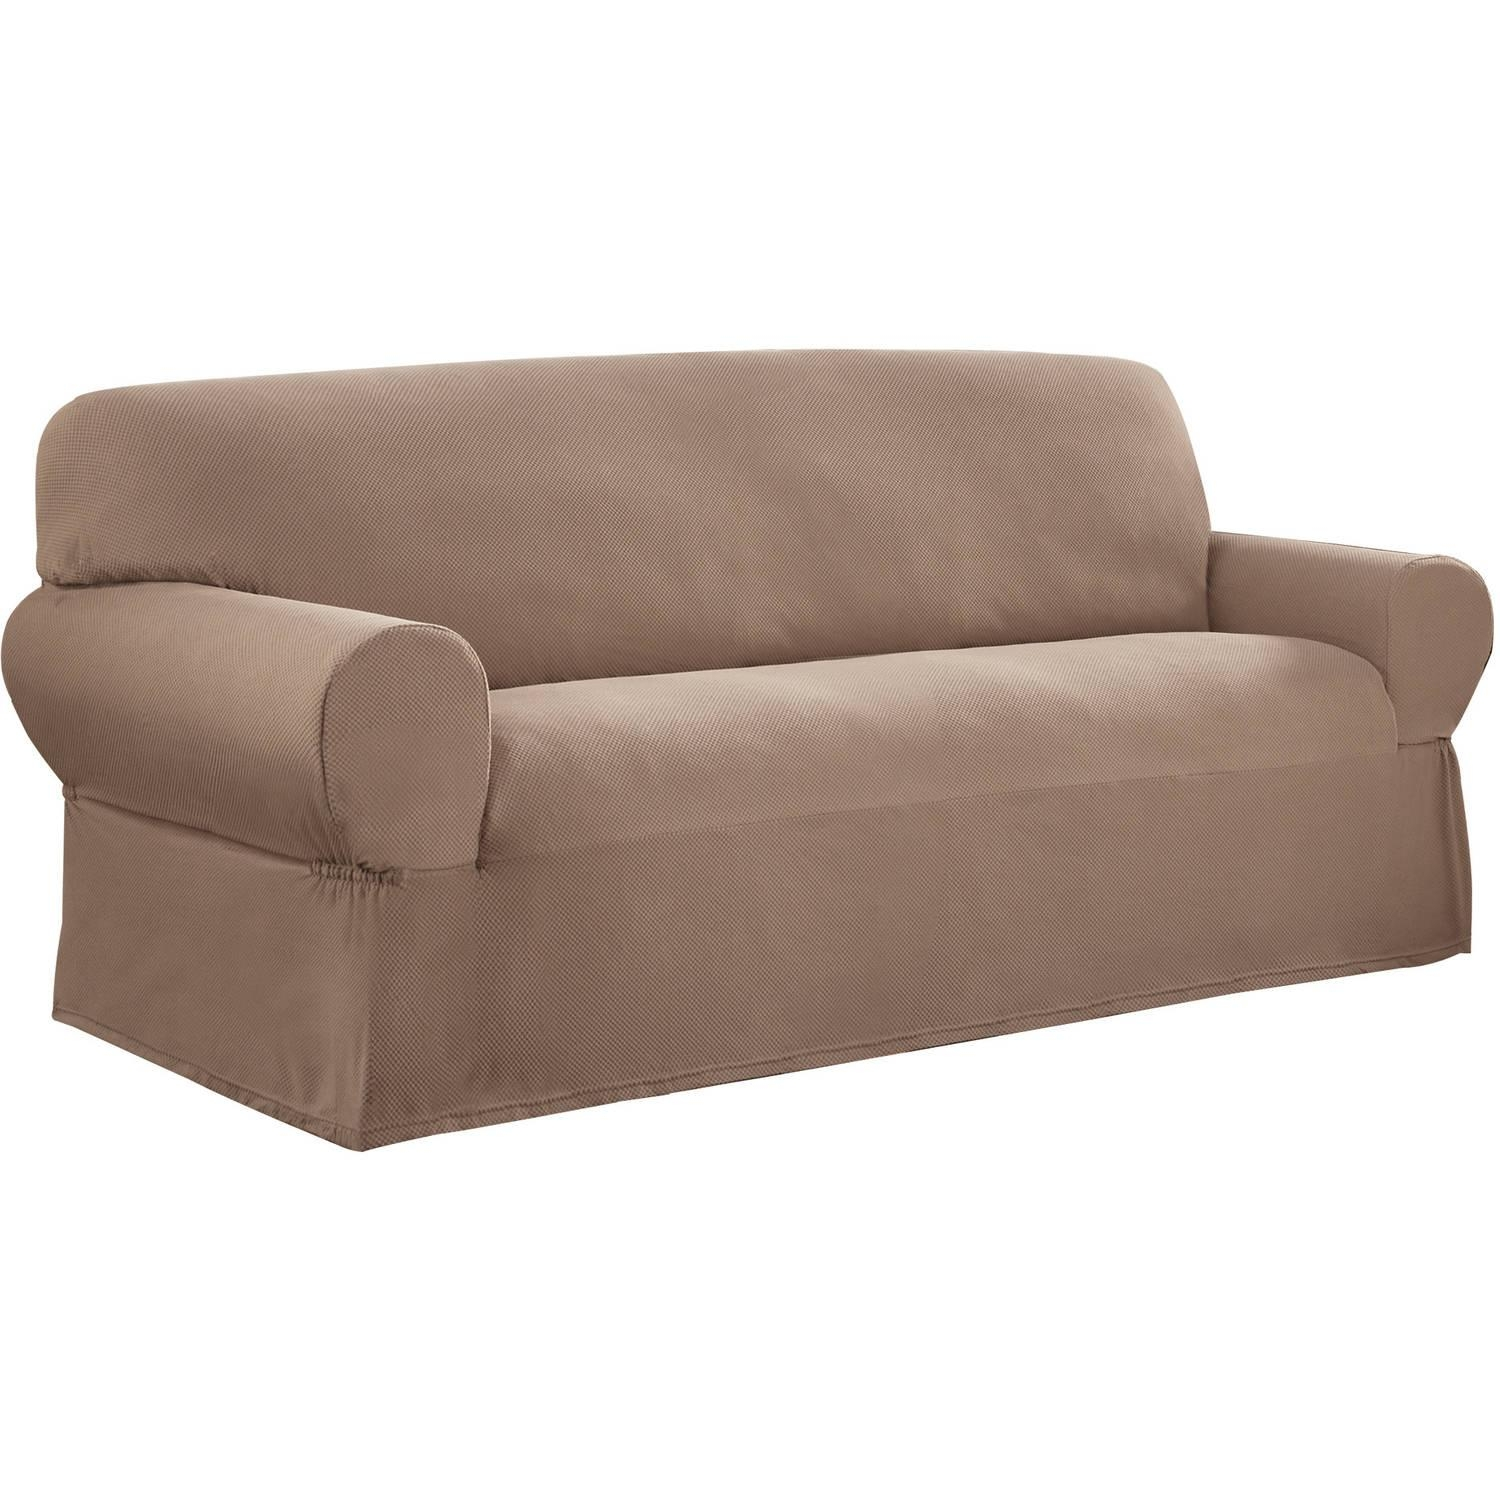 Slipcovers – Walmart Within 3 Piece Sectional Sofa Slipcovers (View 16 of 20)